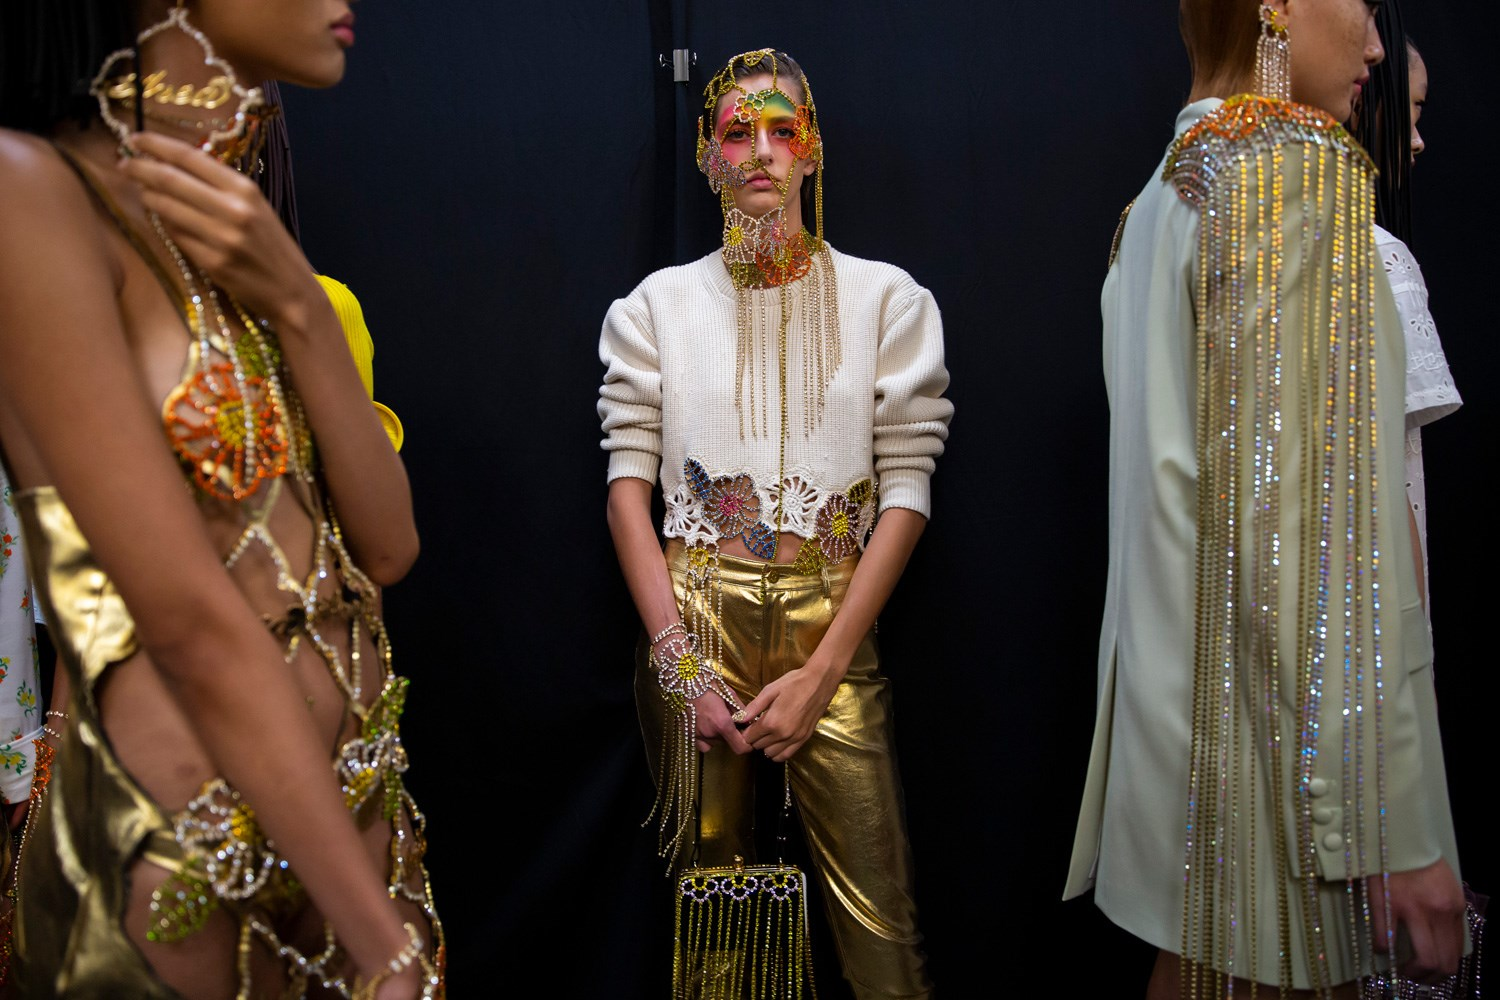 Chains and embellished adornment were in excess at Area SS20. (Photo: theimpression.com)